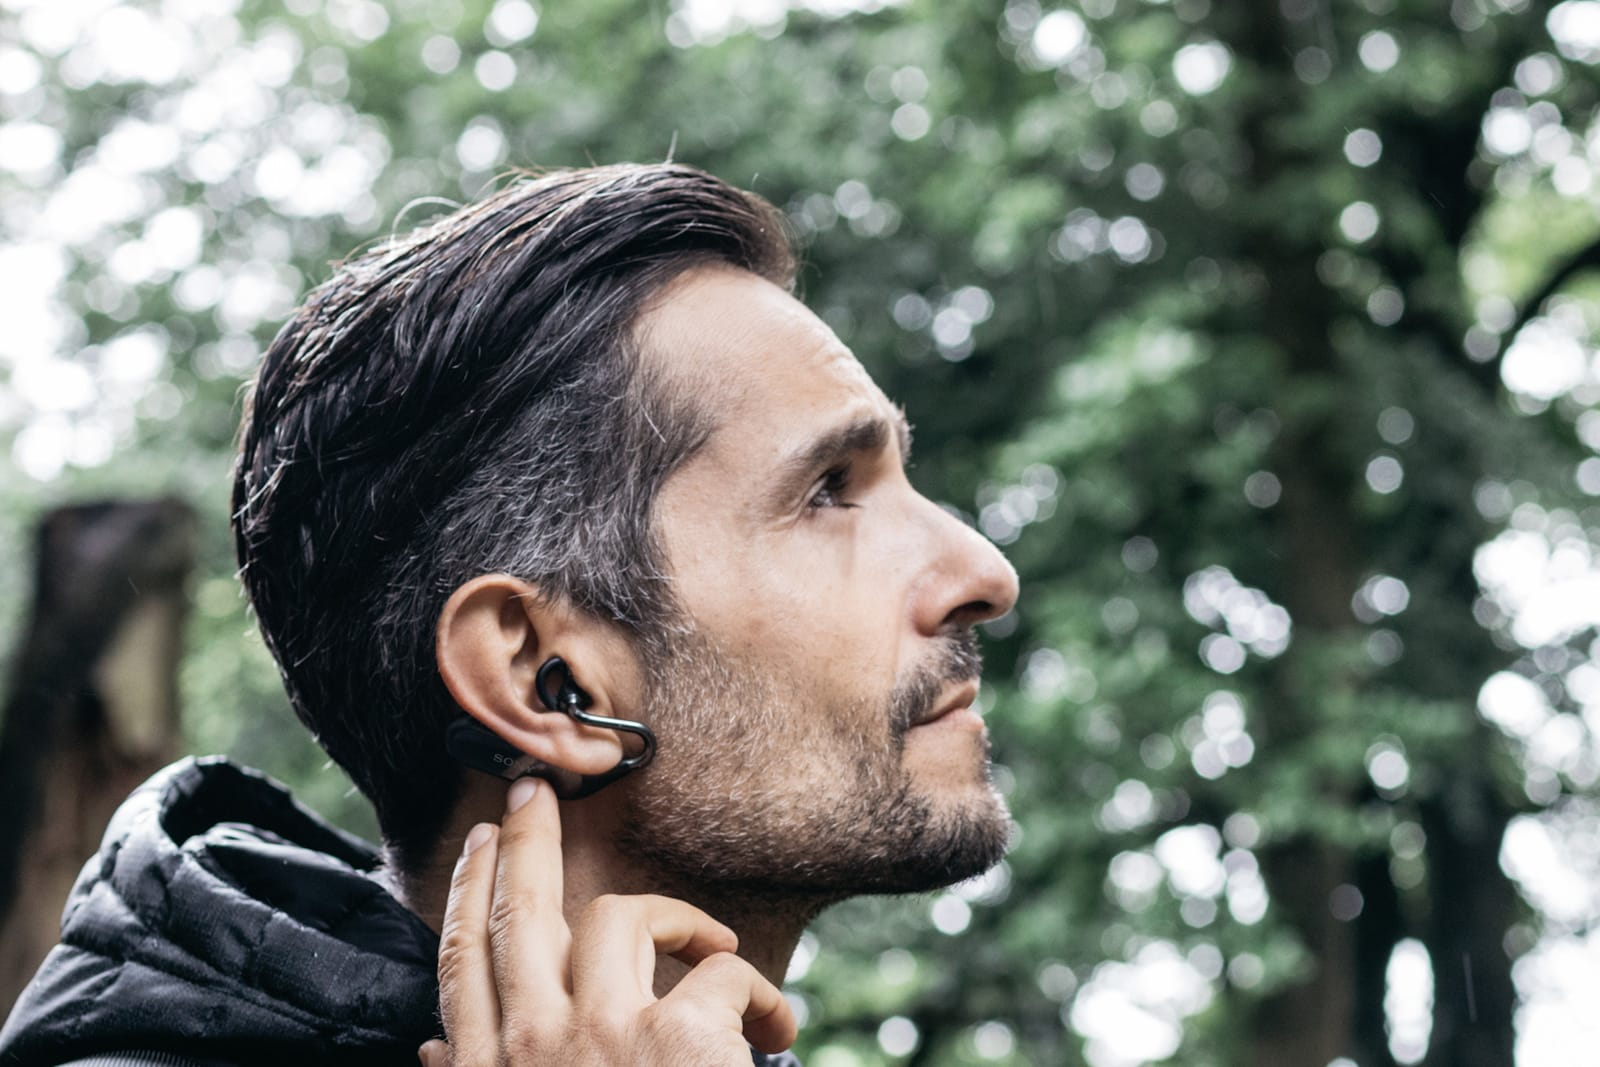 Sony will sell its wireless 'open-ear' buds in the US